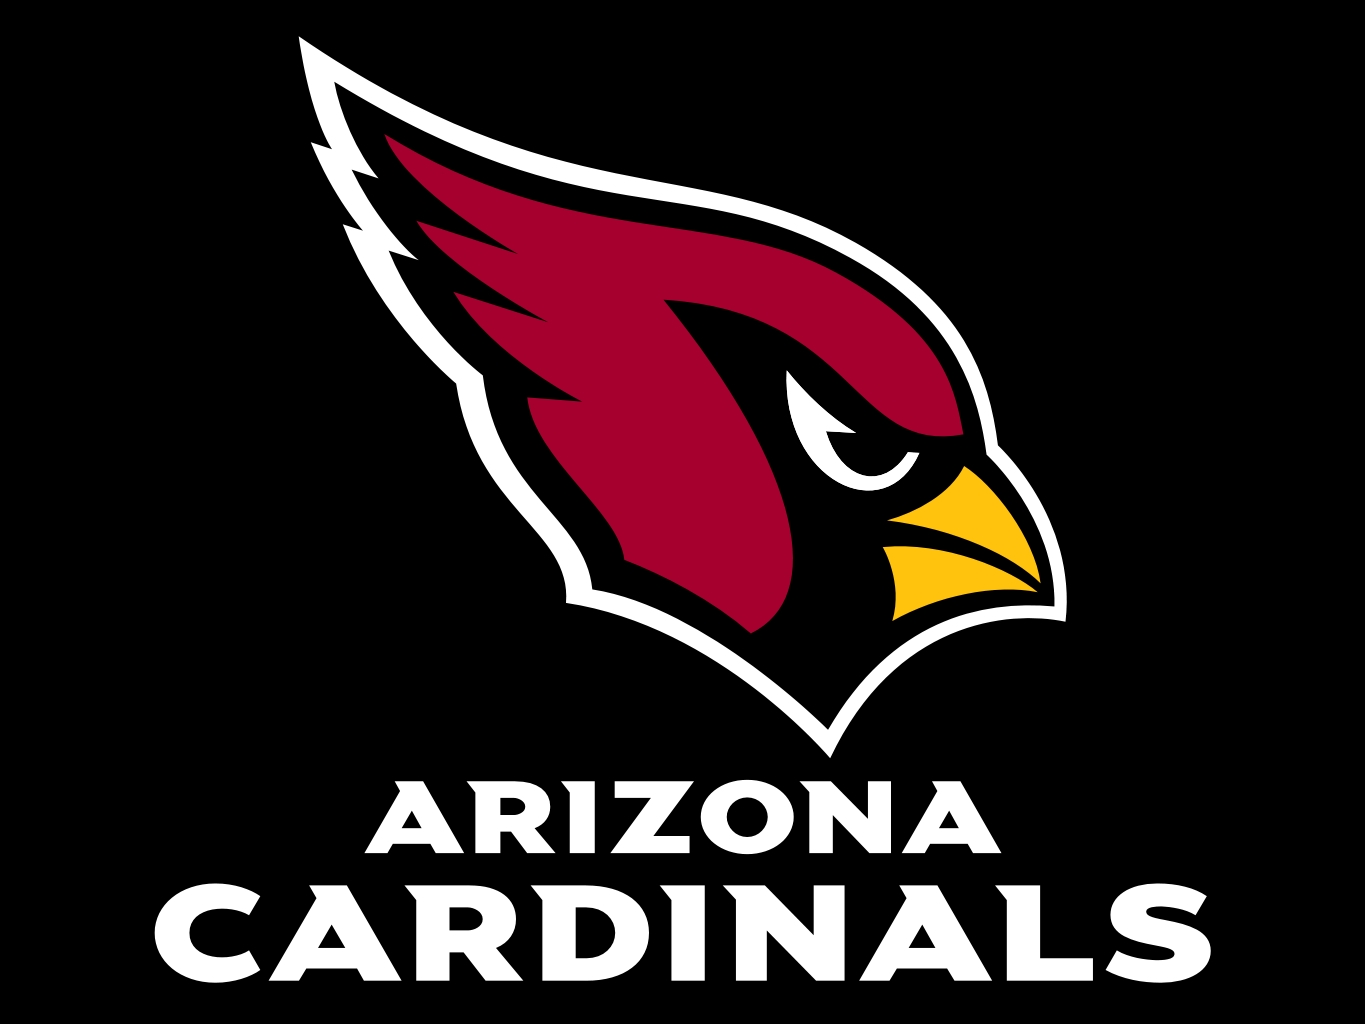 Arizona wallpapers and screensavers wallpapersafari - Arizona cardinals screensaver free ...